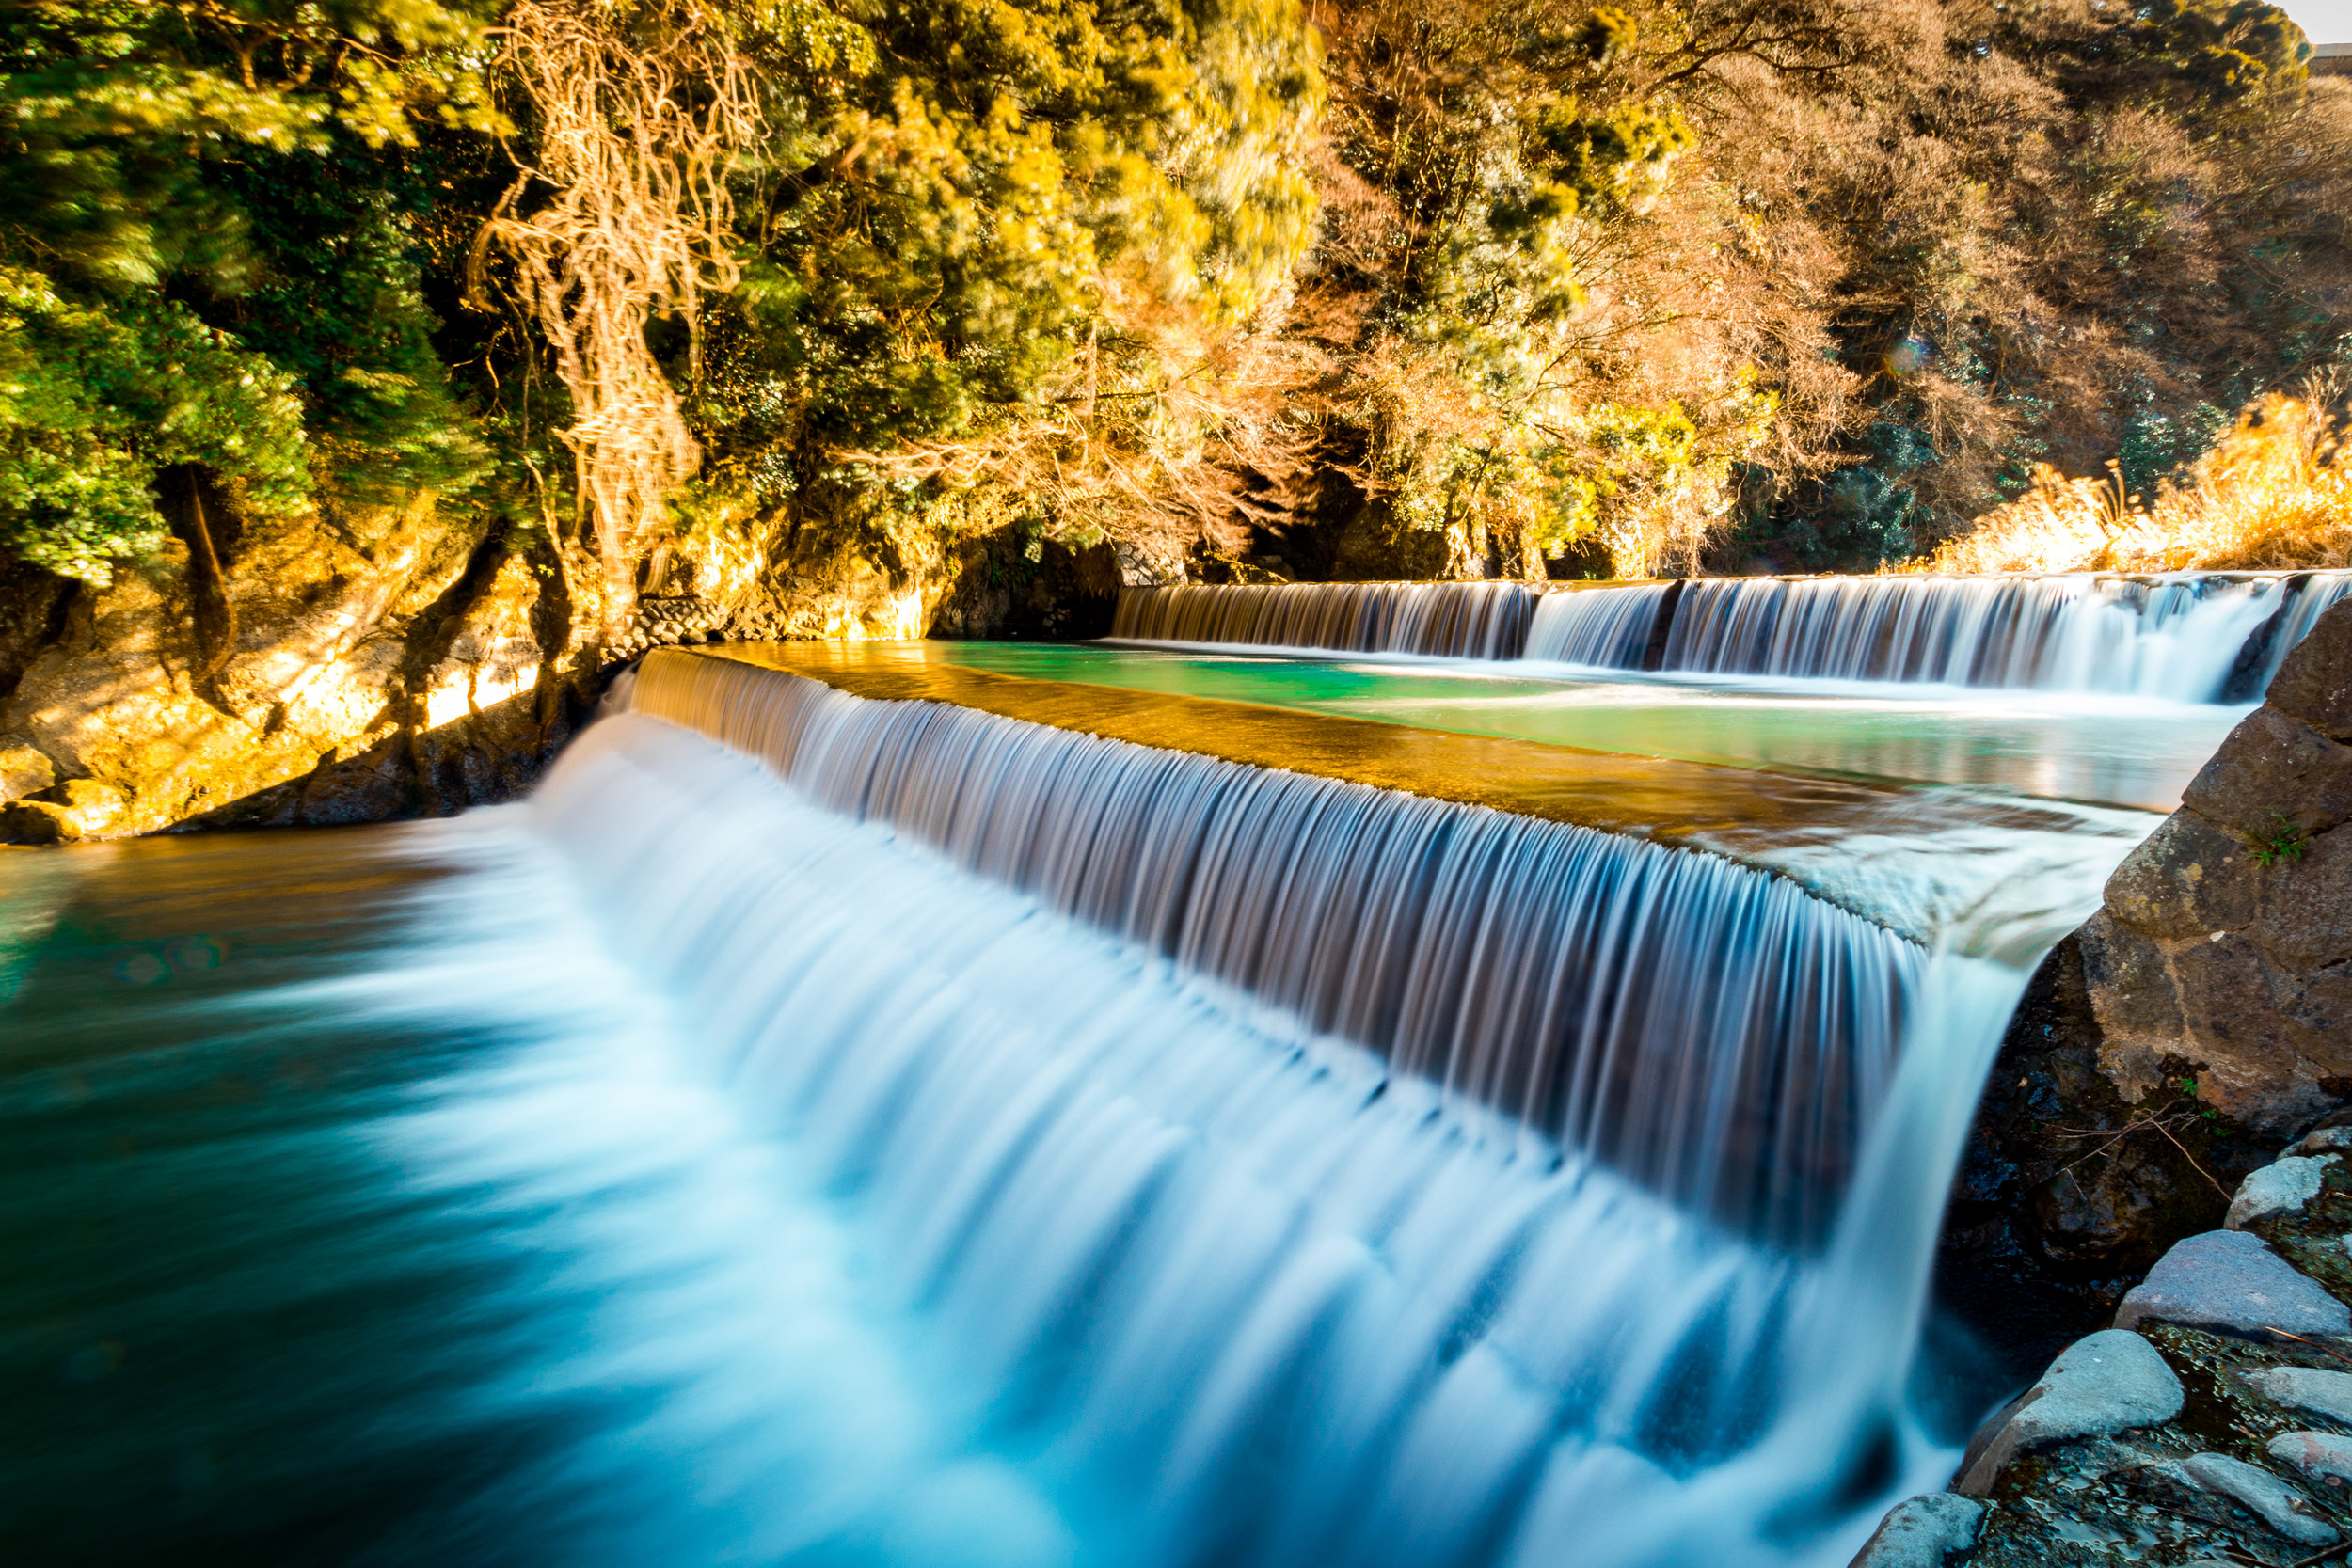 Spencer Thompson Long Exposure Photography